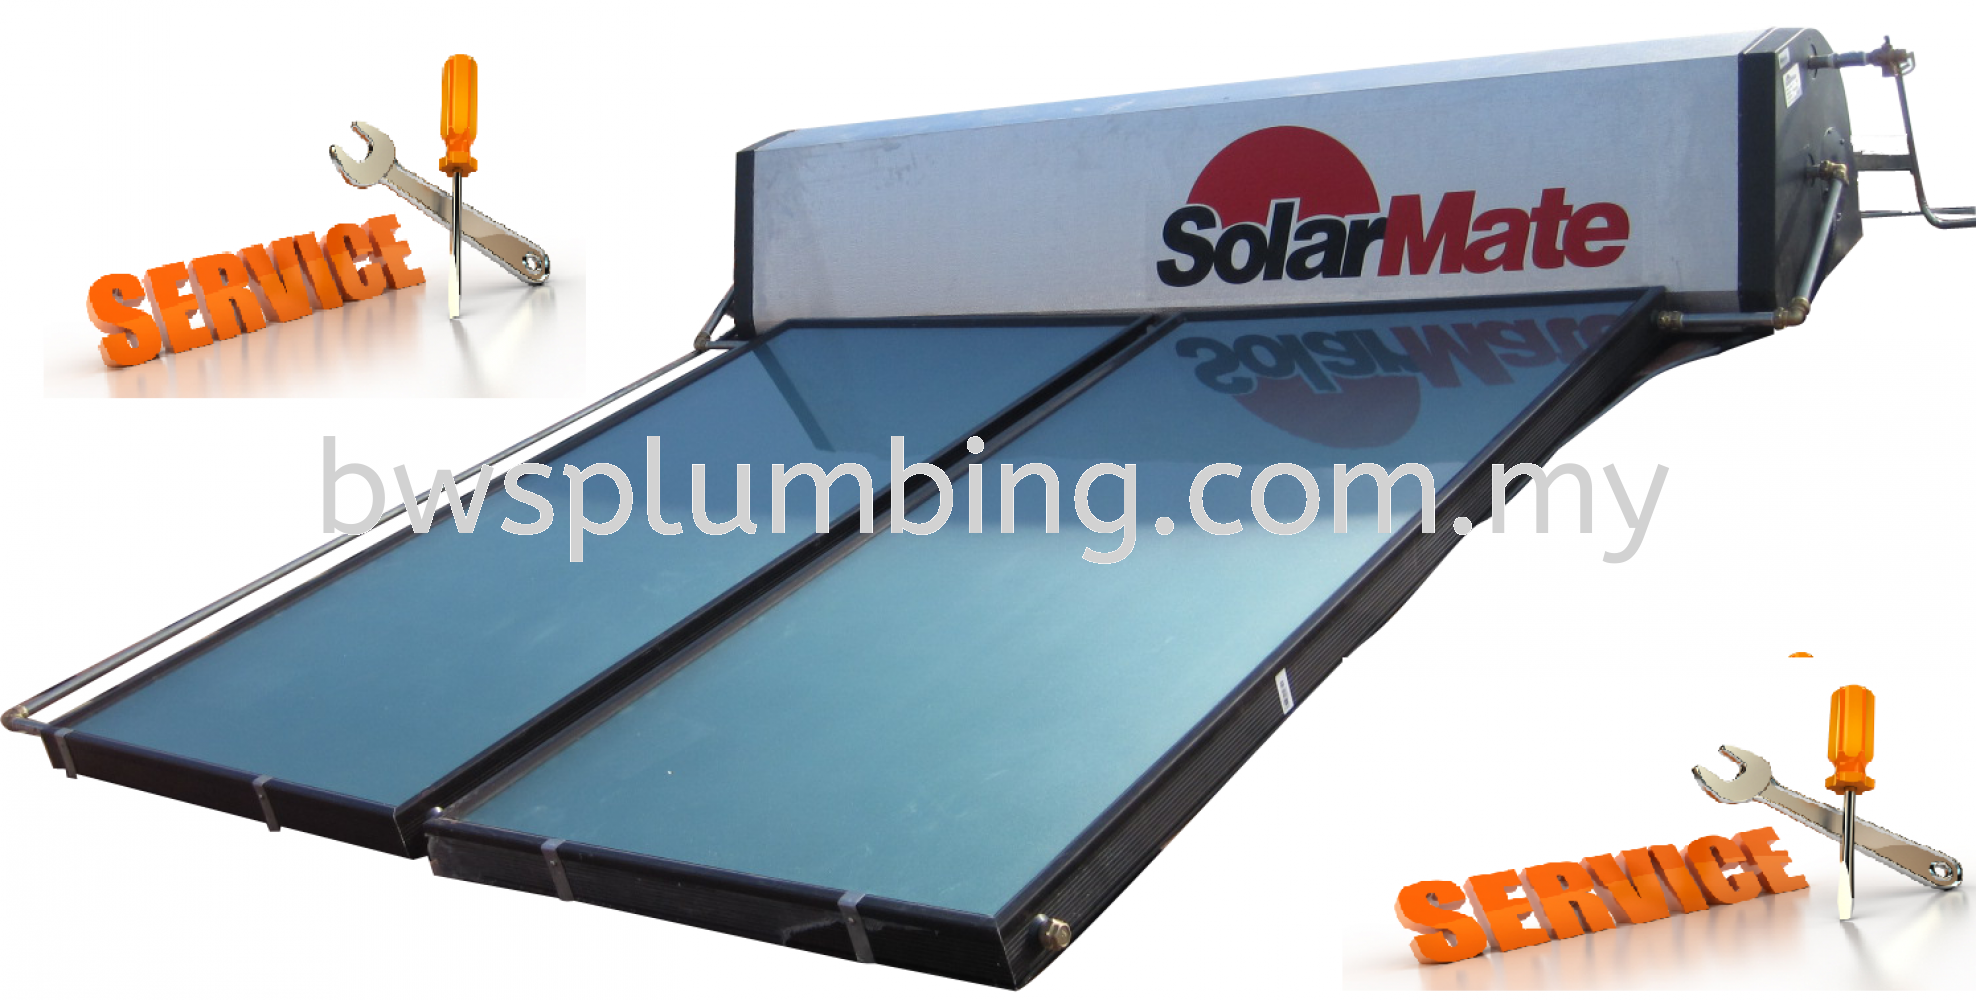 1. We do repair and service maintenance ALL brands of solar water ...